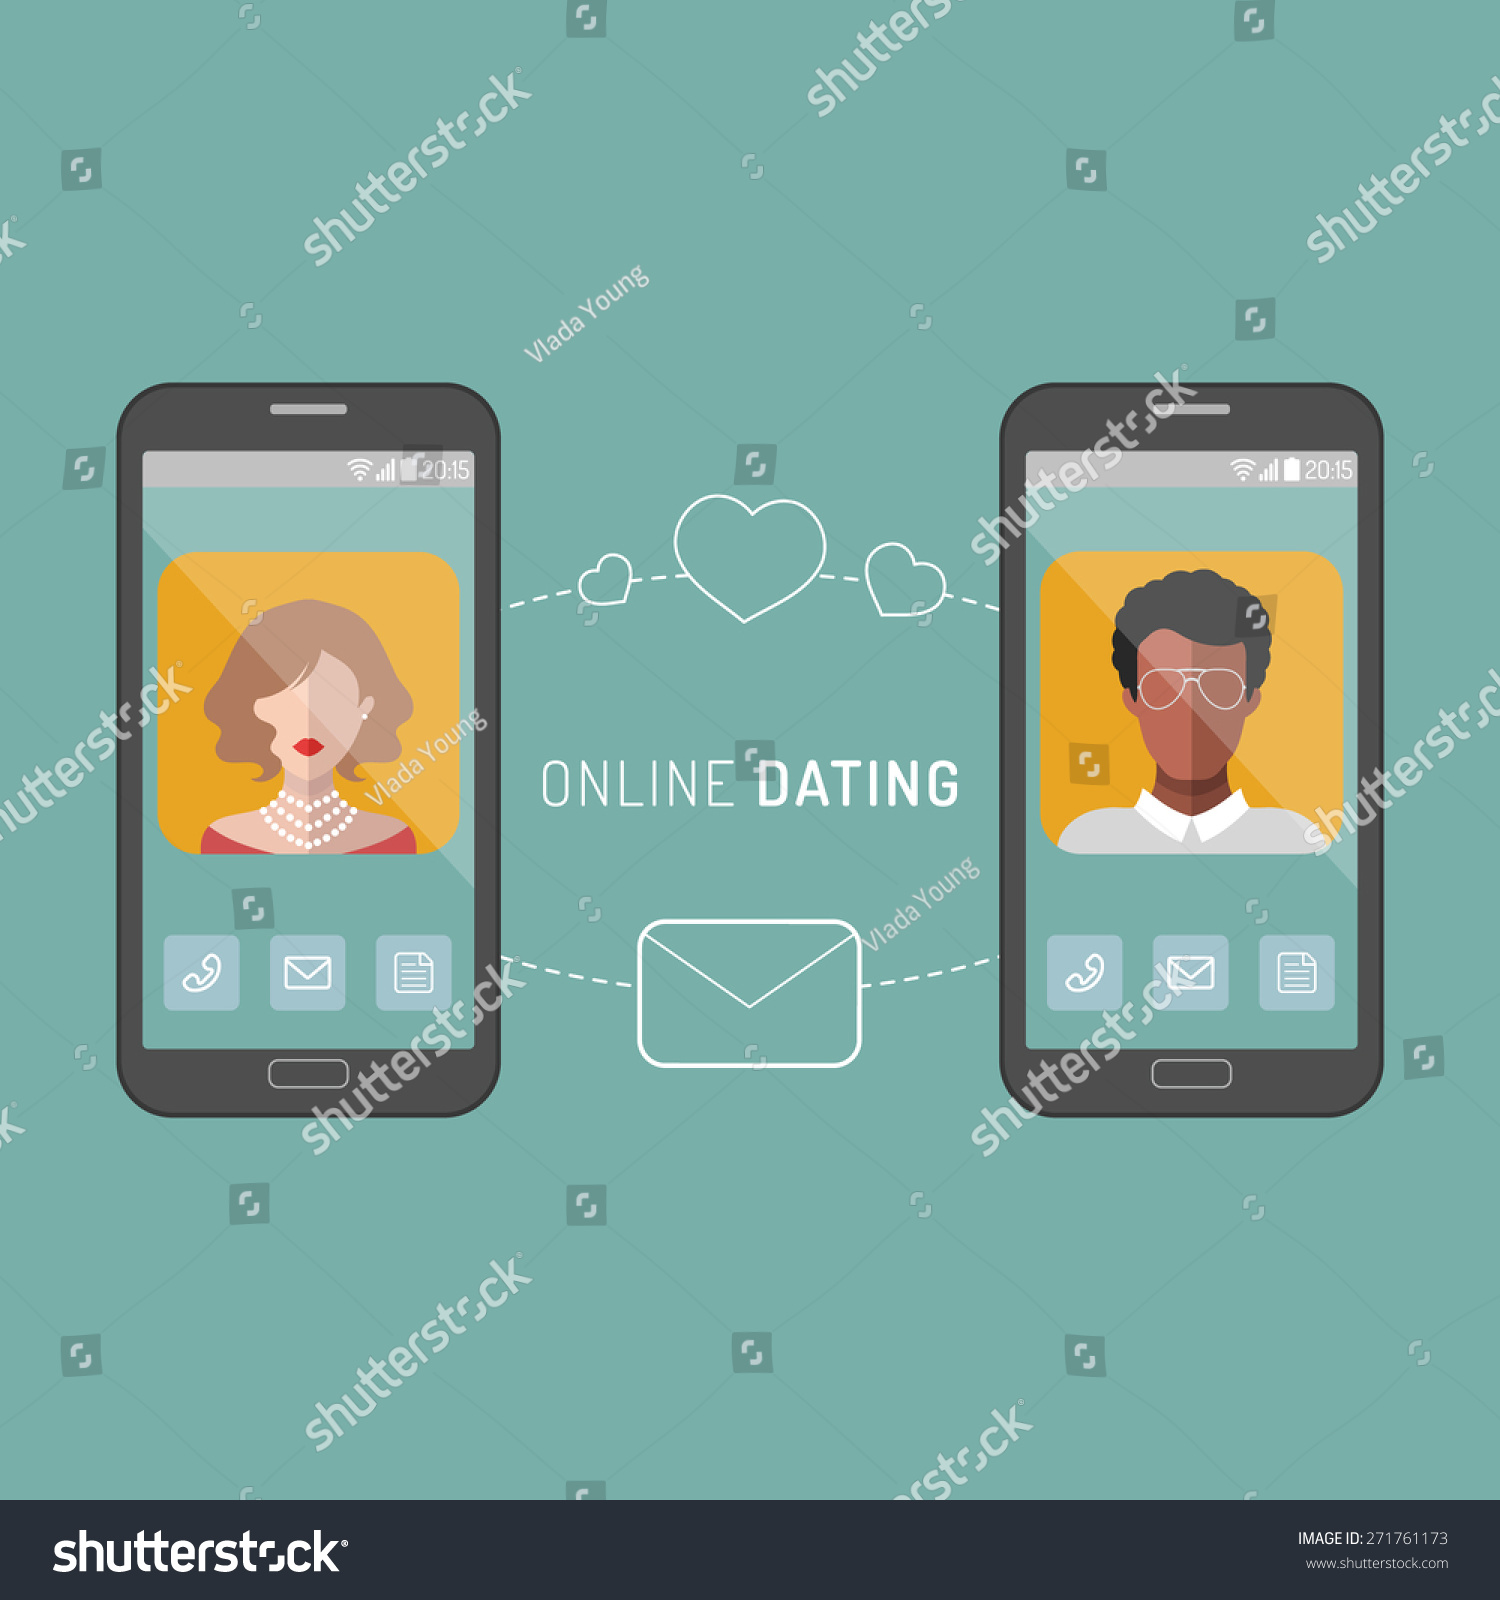 Free dating apps for couples